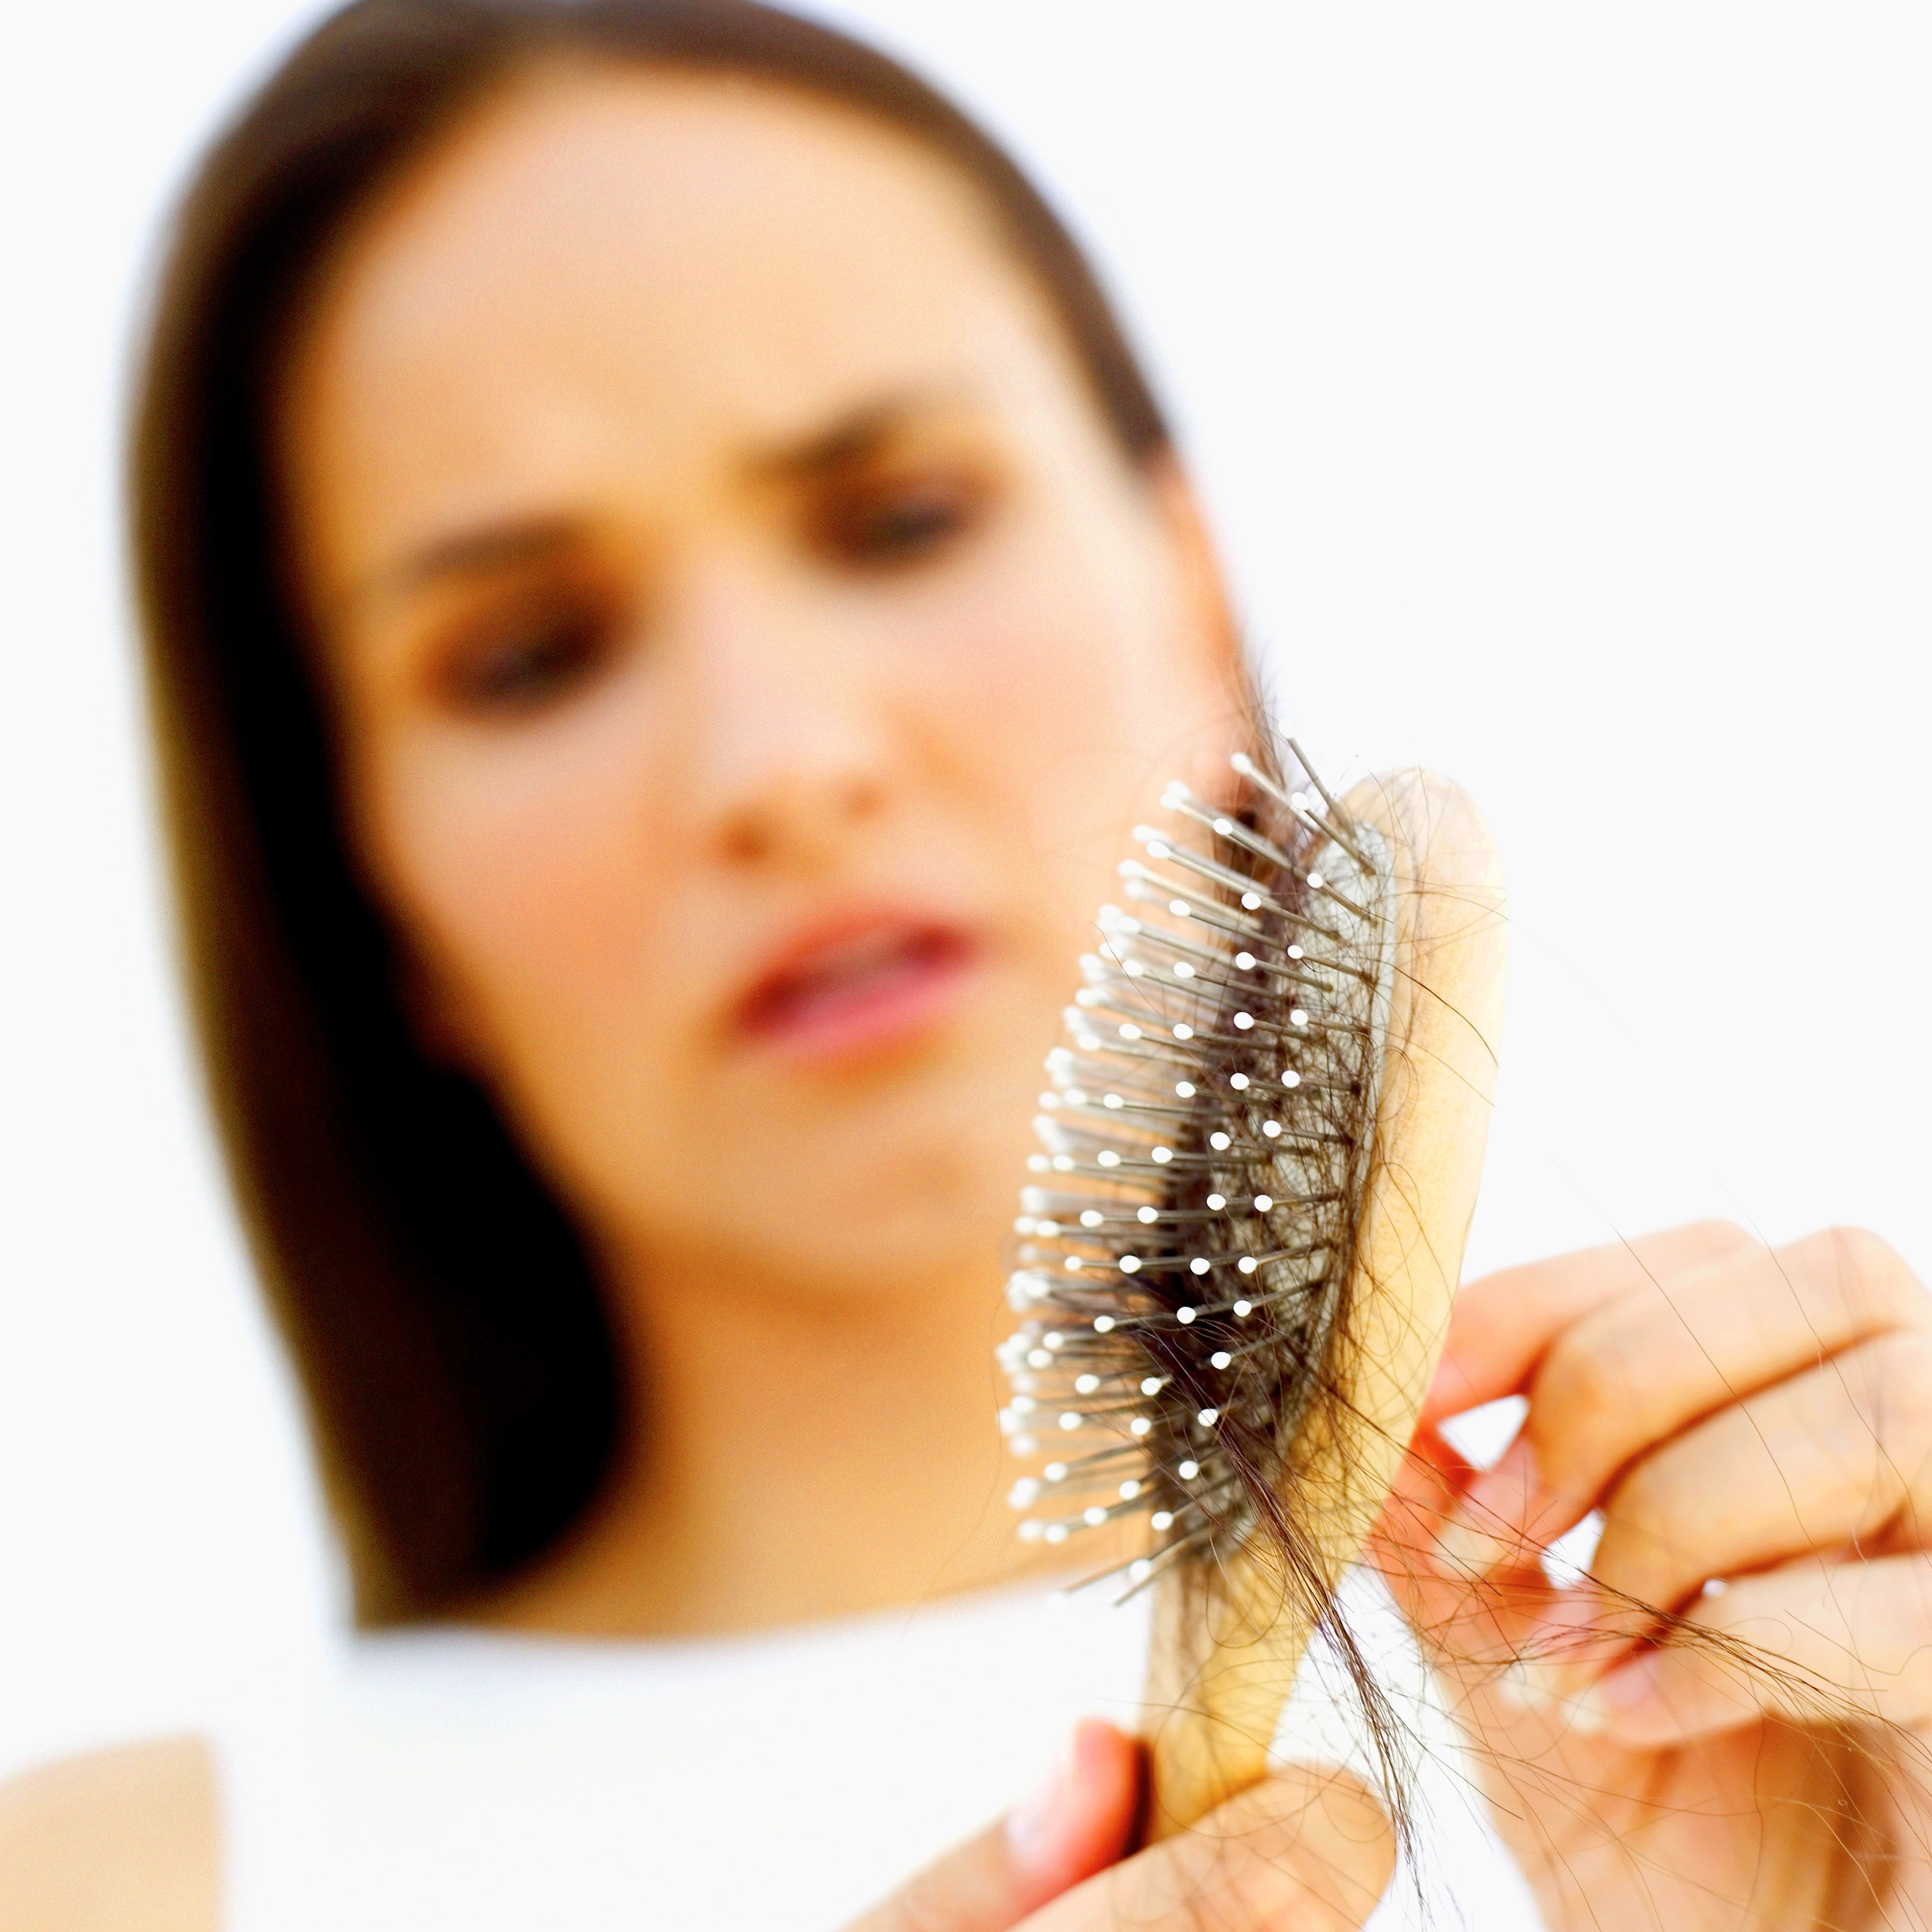 Hair Regrowth Stimulated by Microneedle Patch